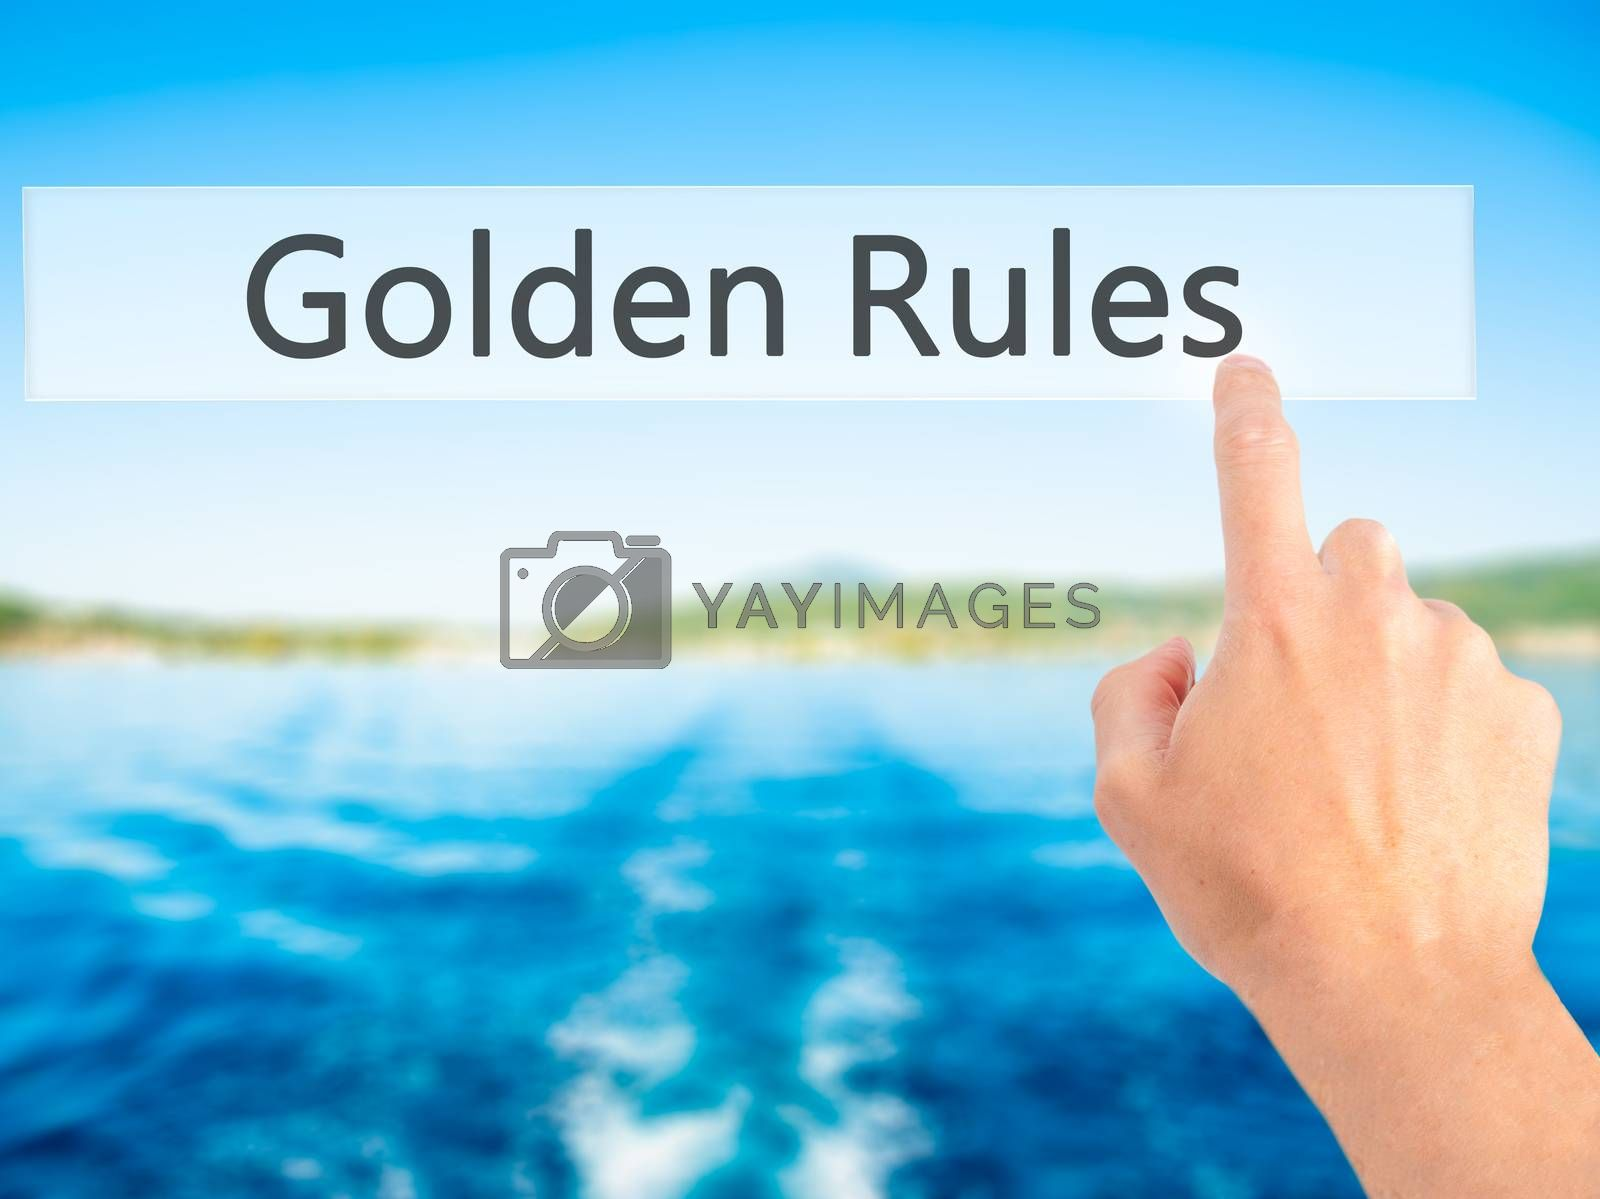 Golden Rules - Hand pressing a button on blurred background conc by netsay.net